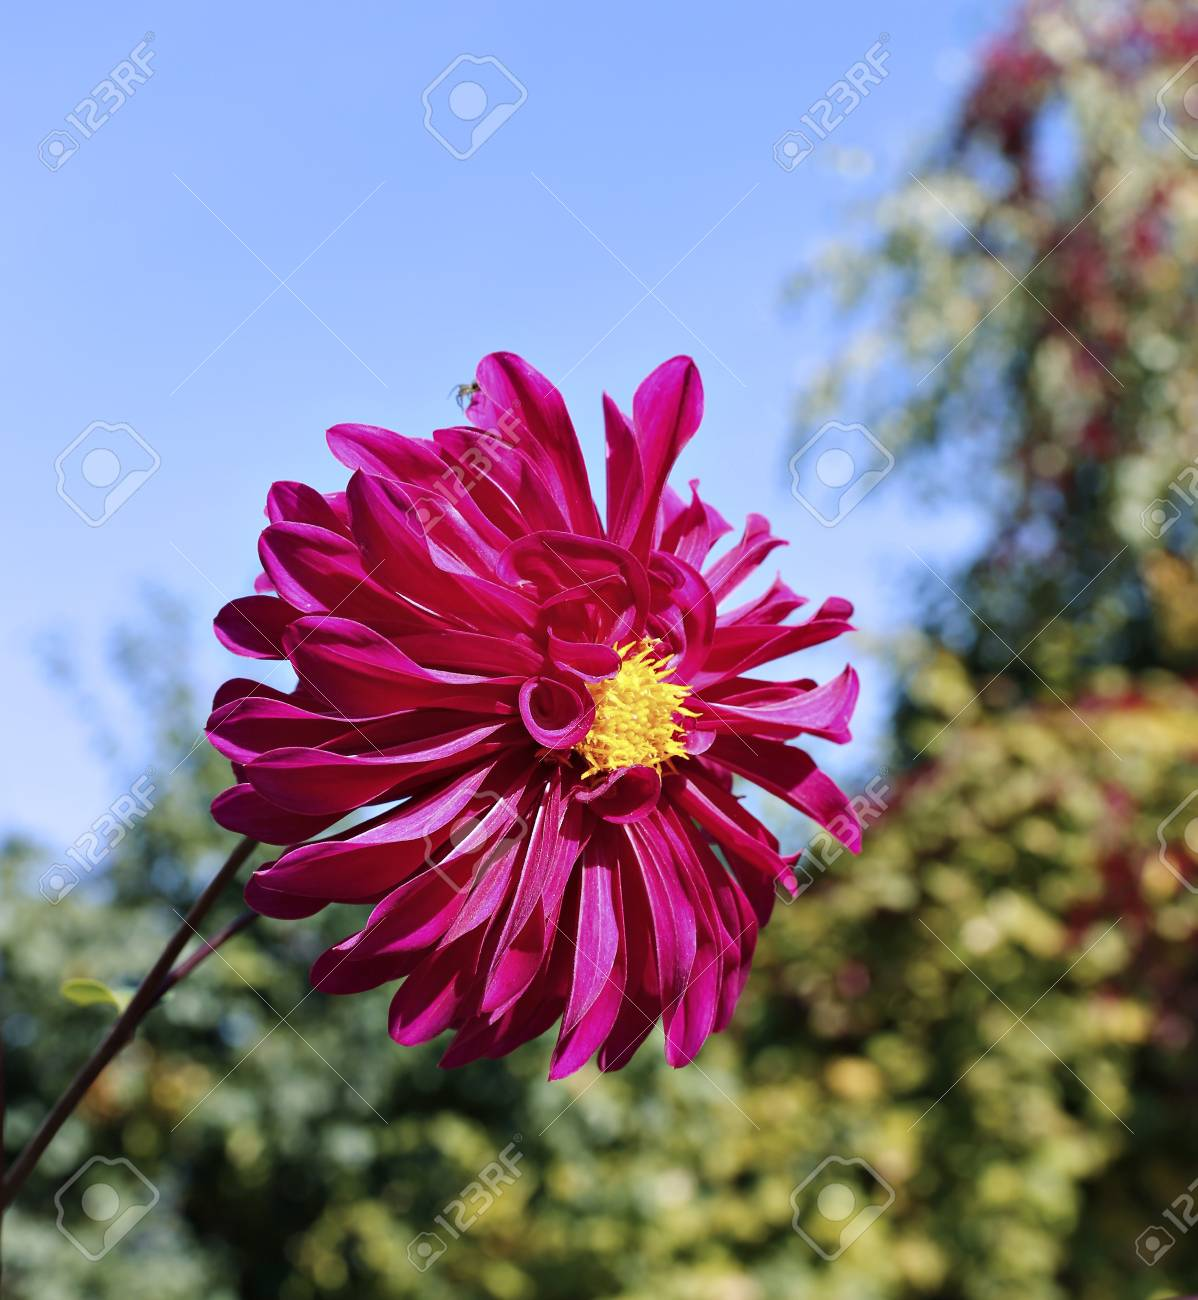 Red Dahlia Flower In Garden At Summer Stock Photo Picture And